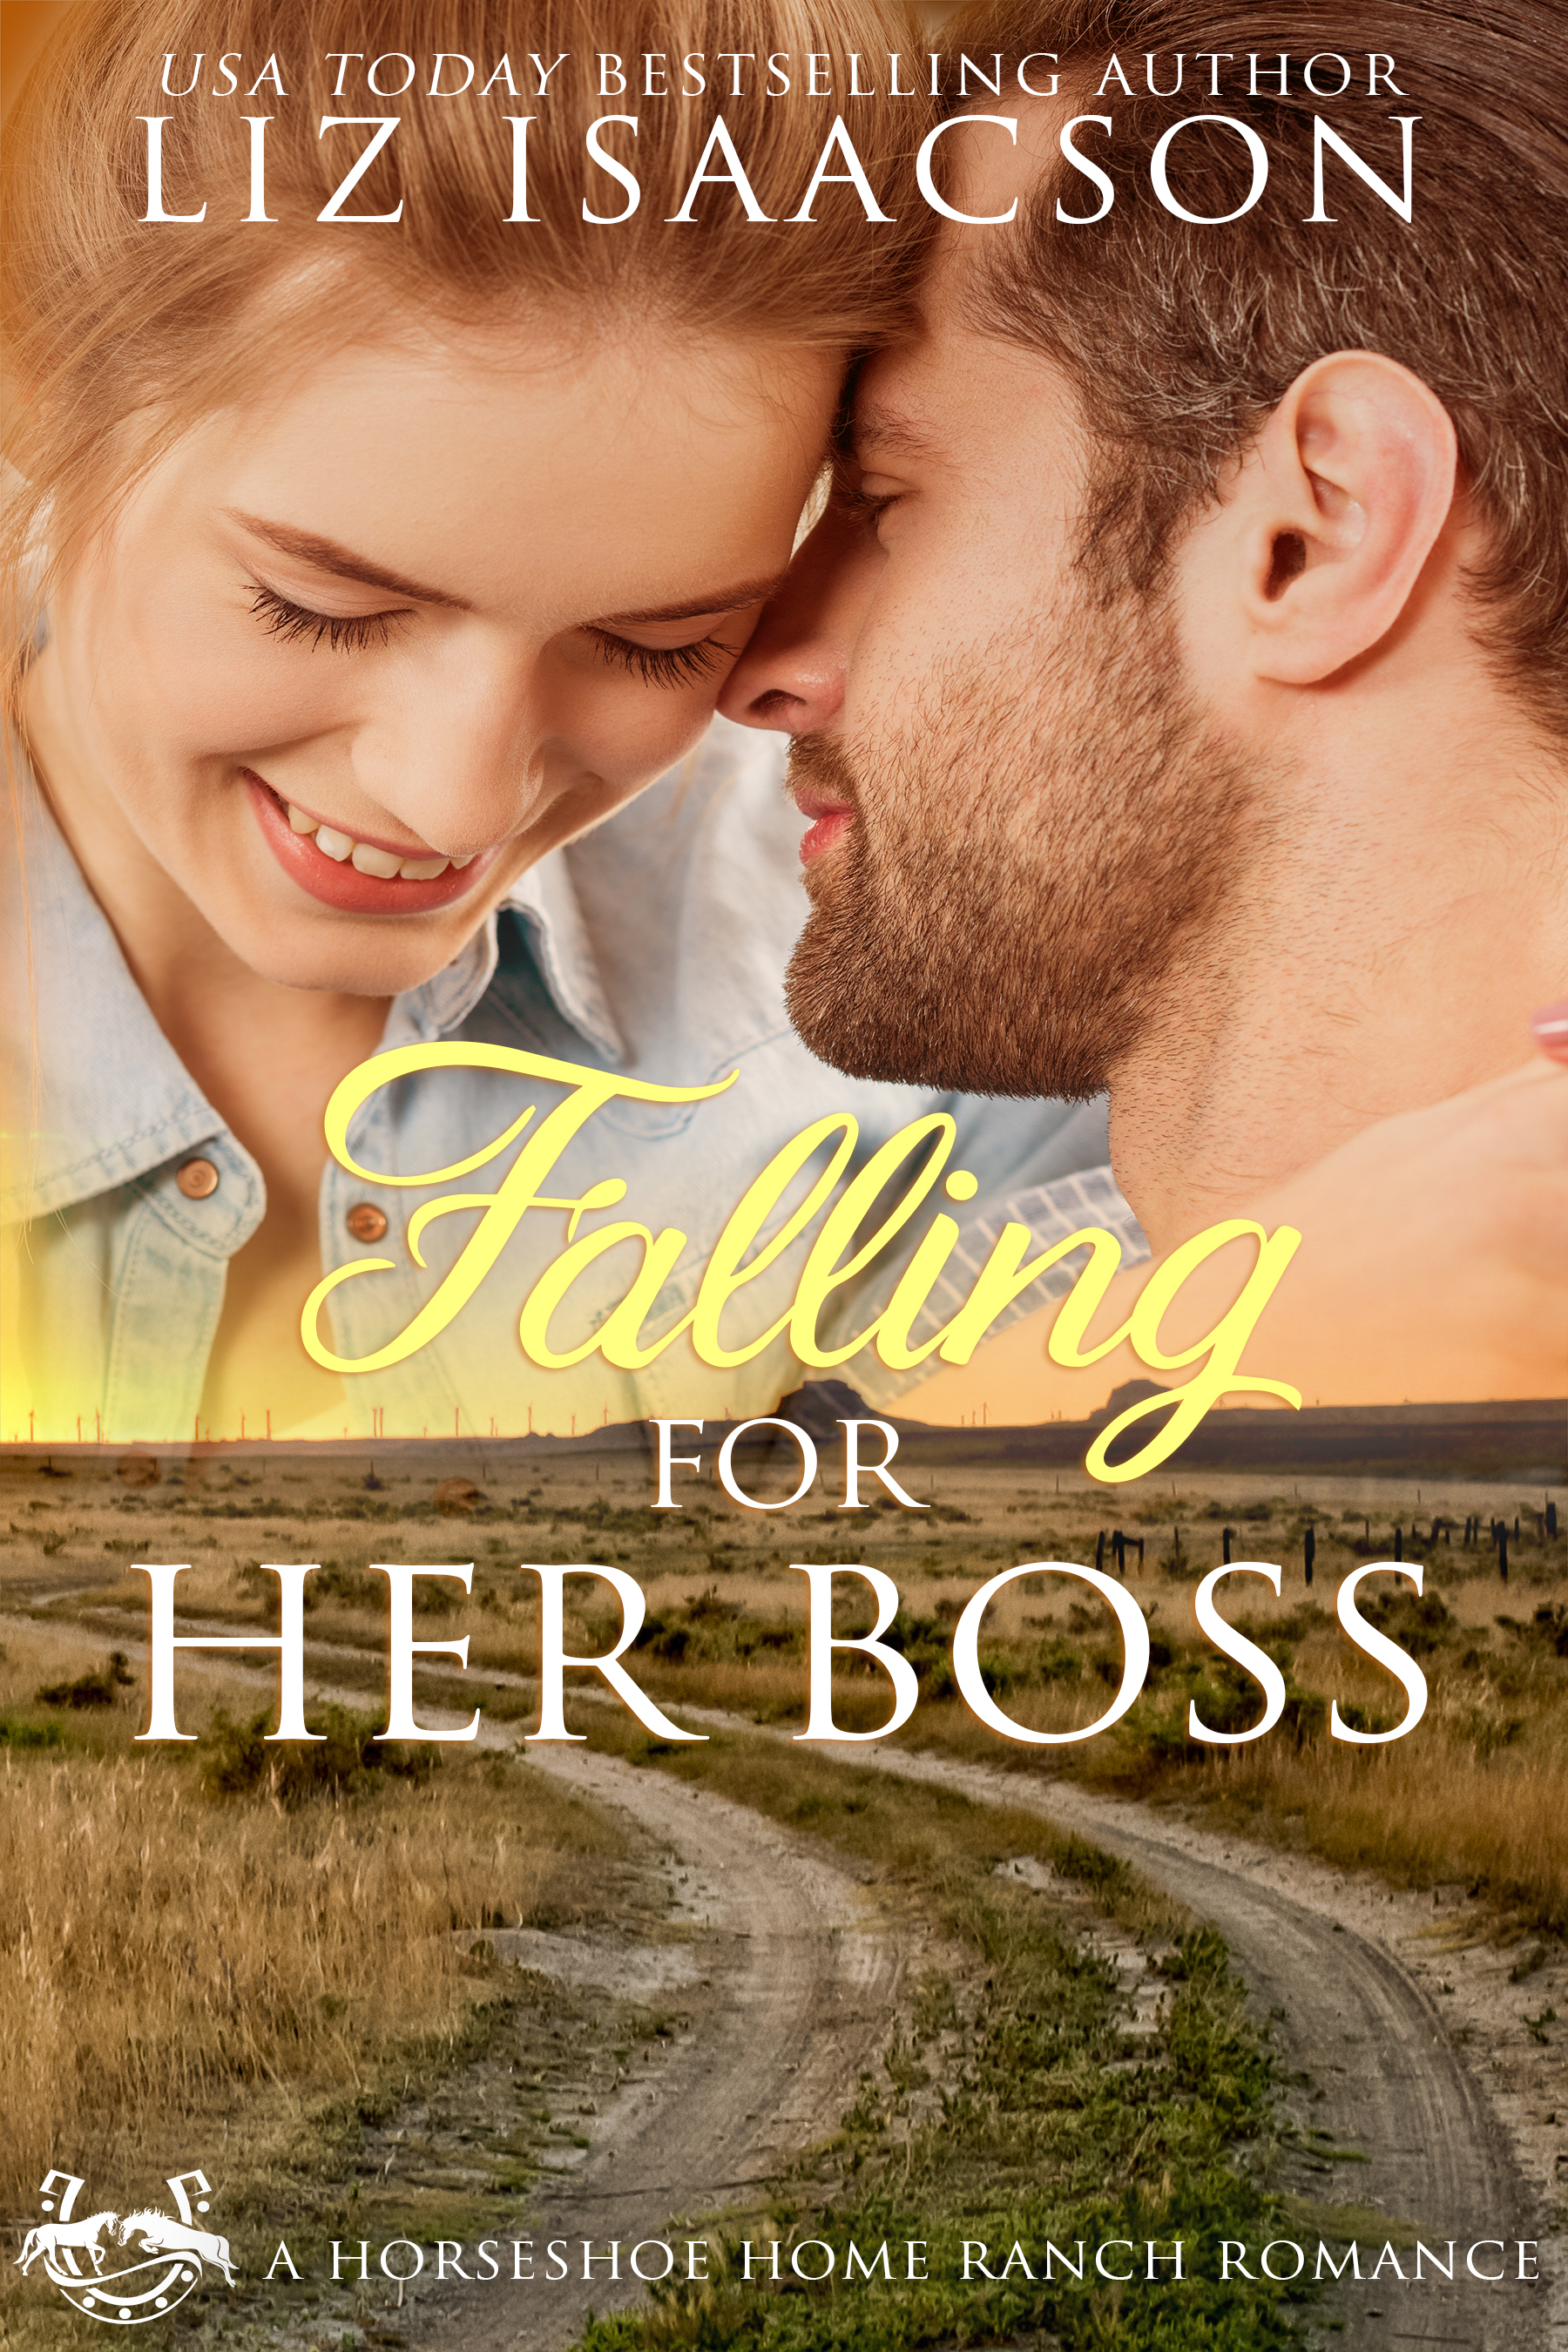 Falling for her boss ebook